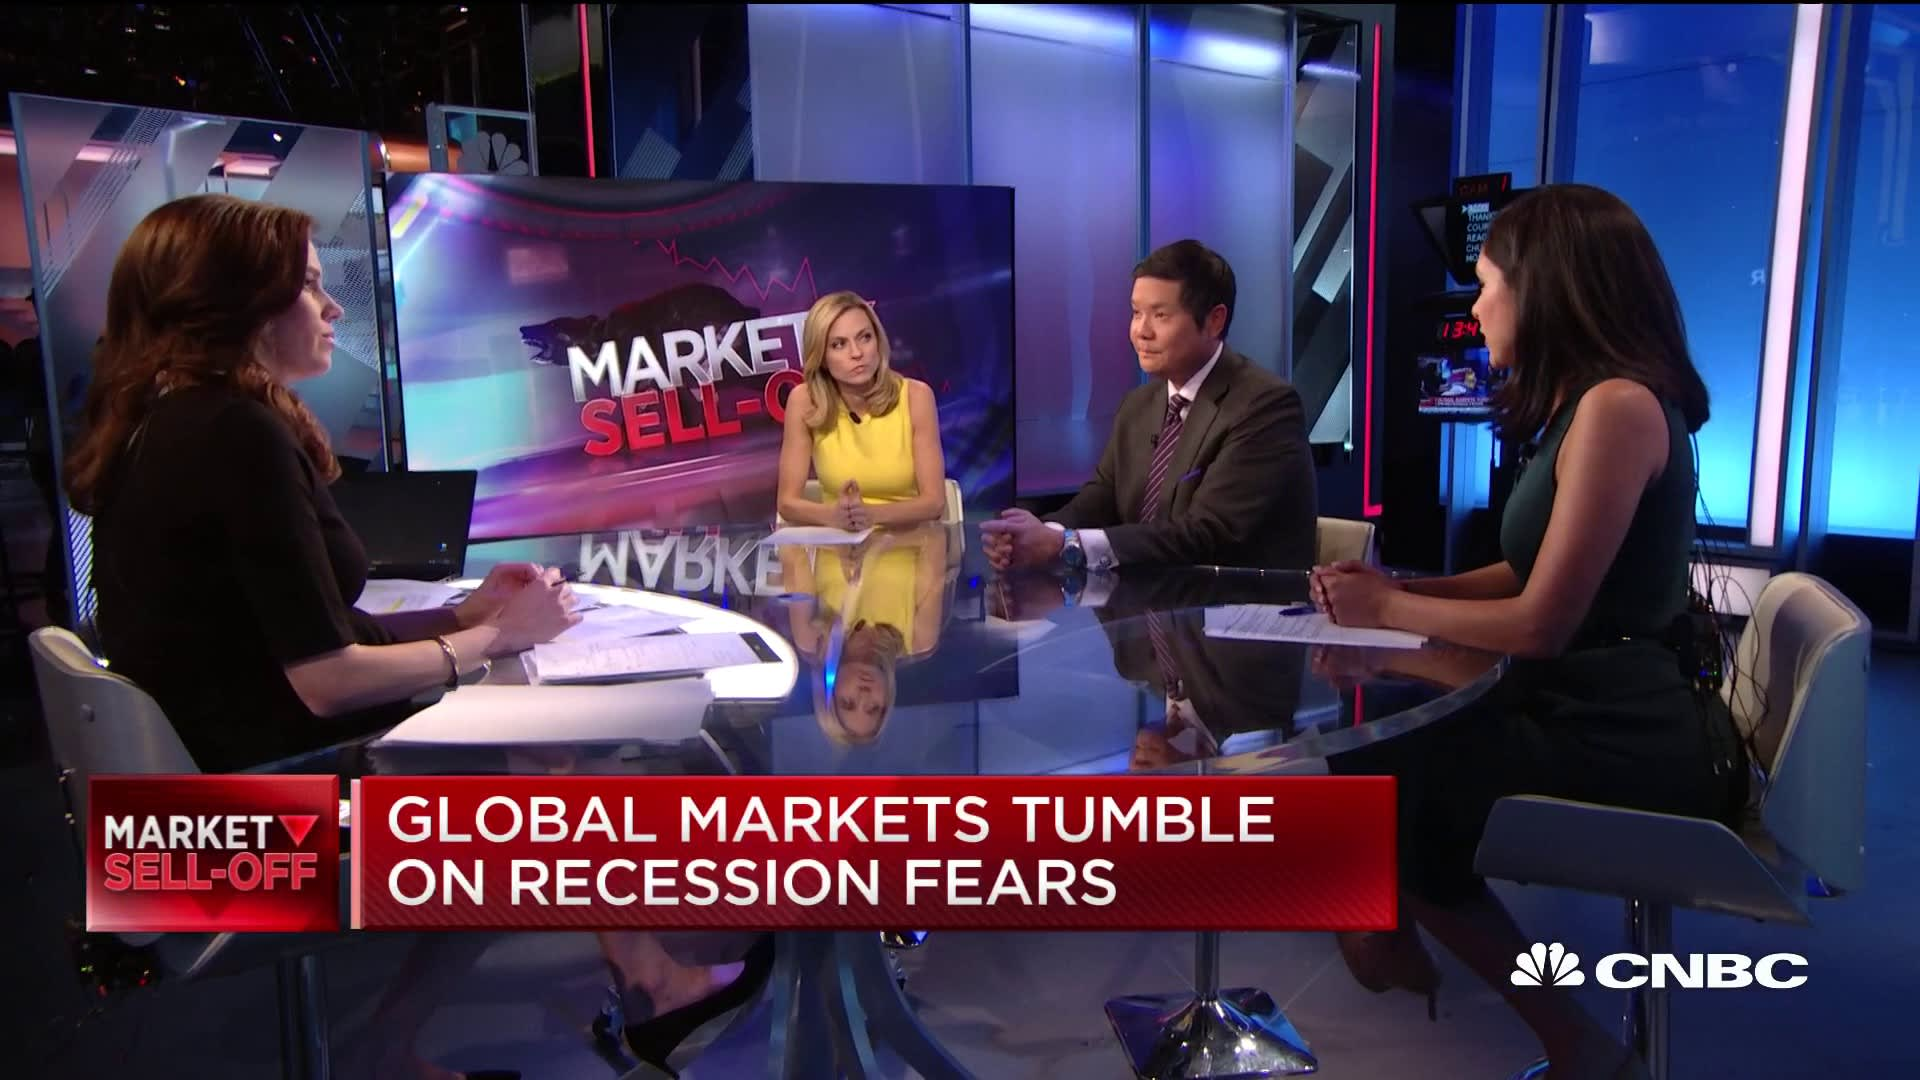 CNBC's The Exchange: Business News, Investing, Market Analysis